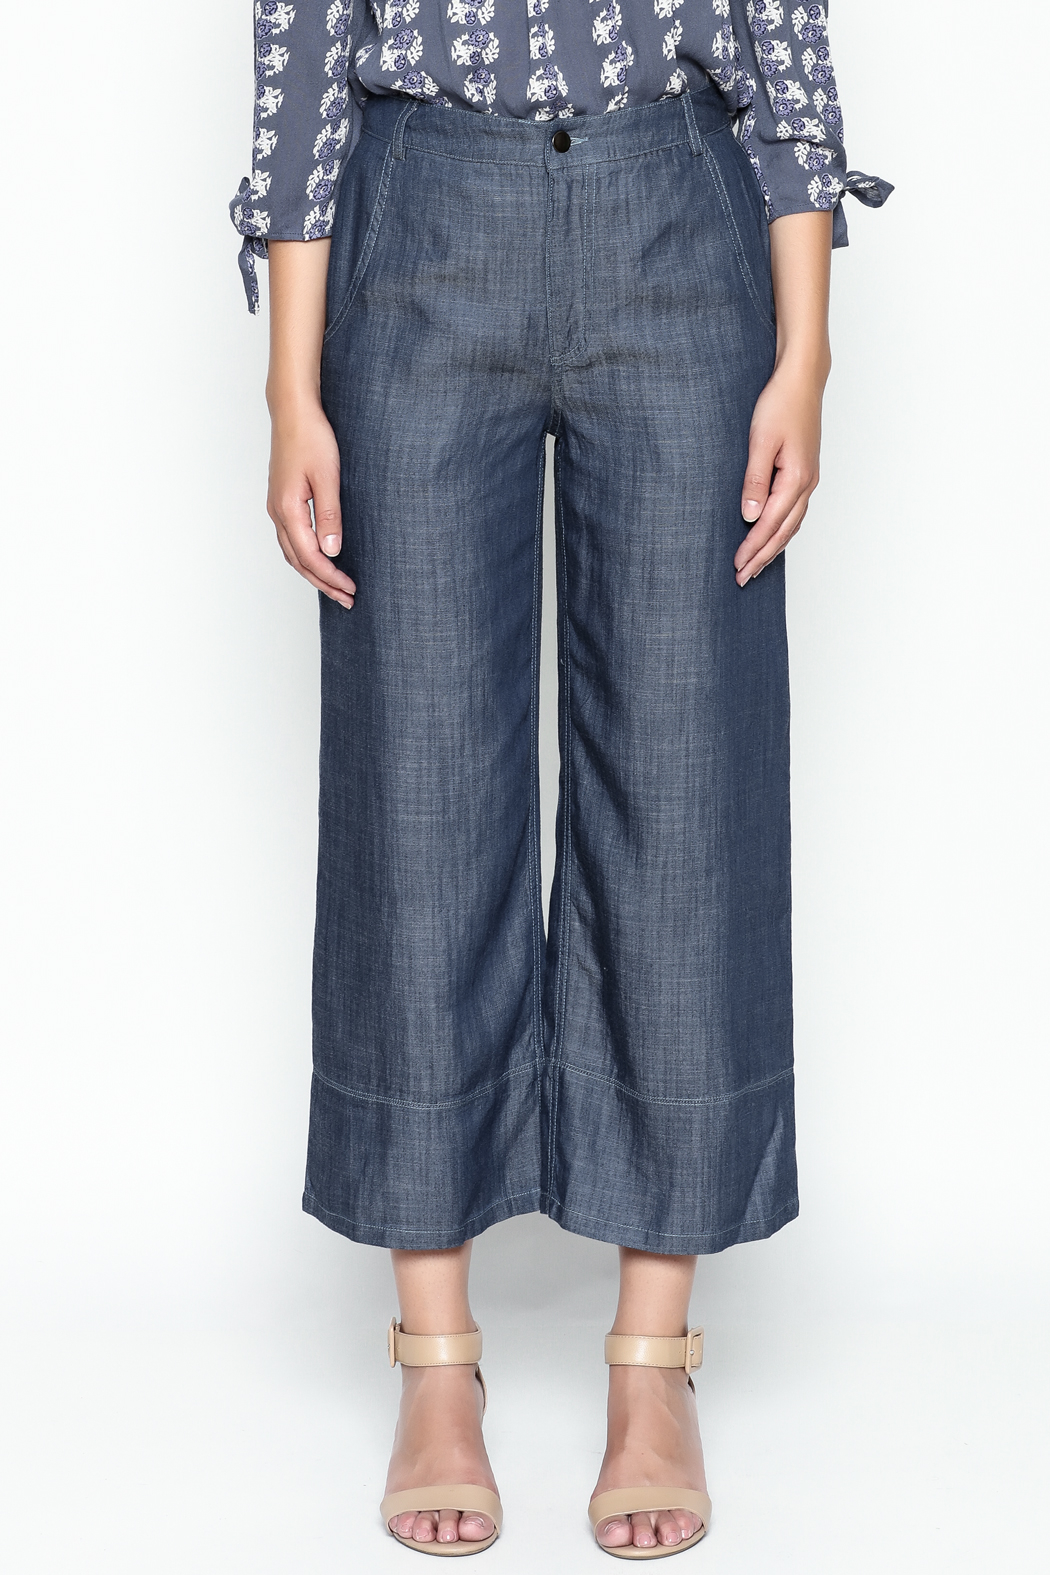 Current Air Tencel Culotte Pants - Front Full Image